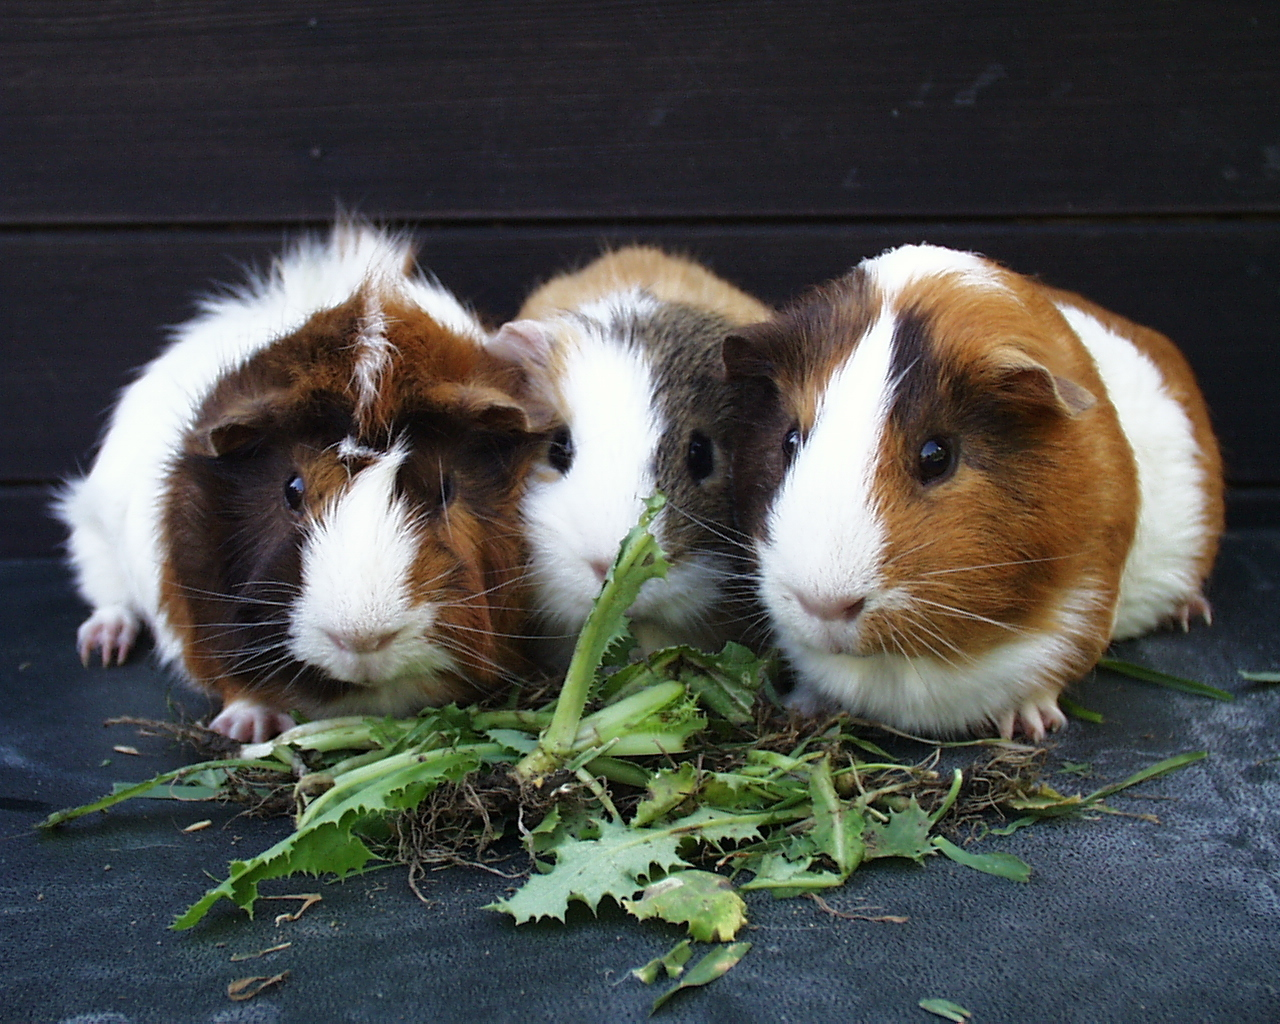 guinea pigs images guinea pigs hd wallpaper and background